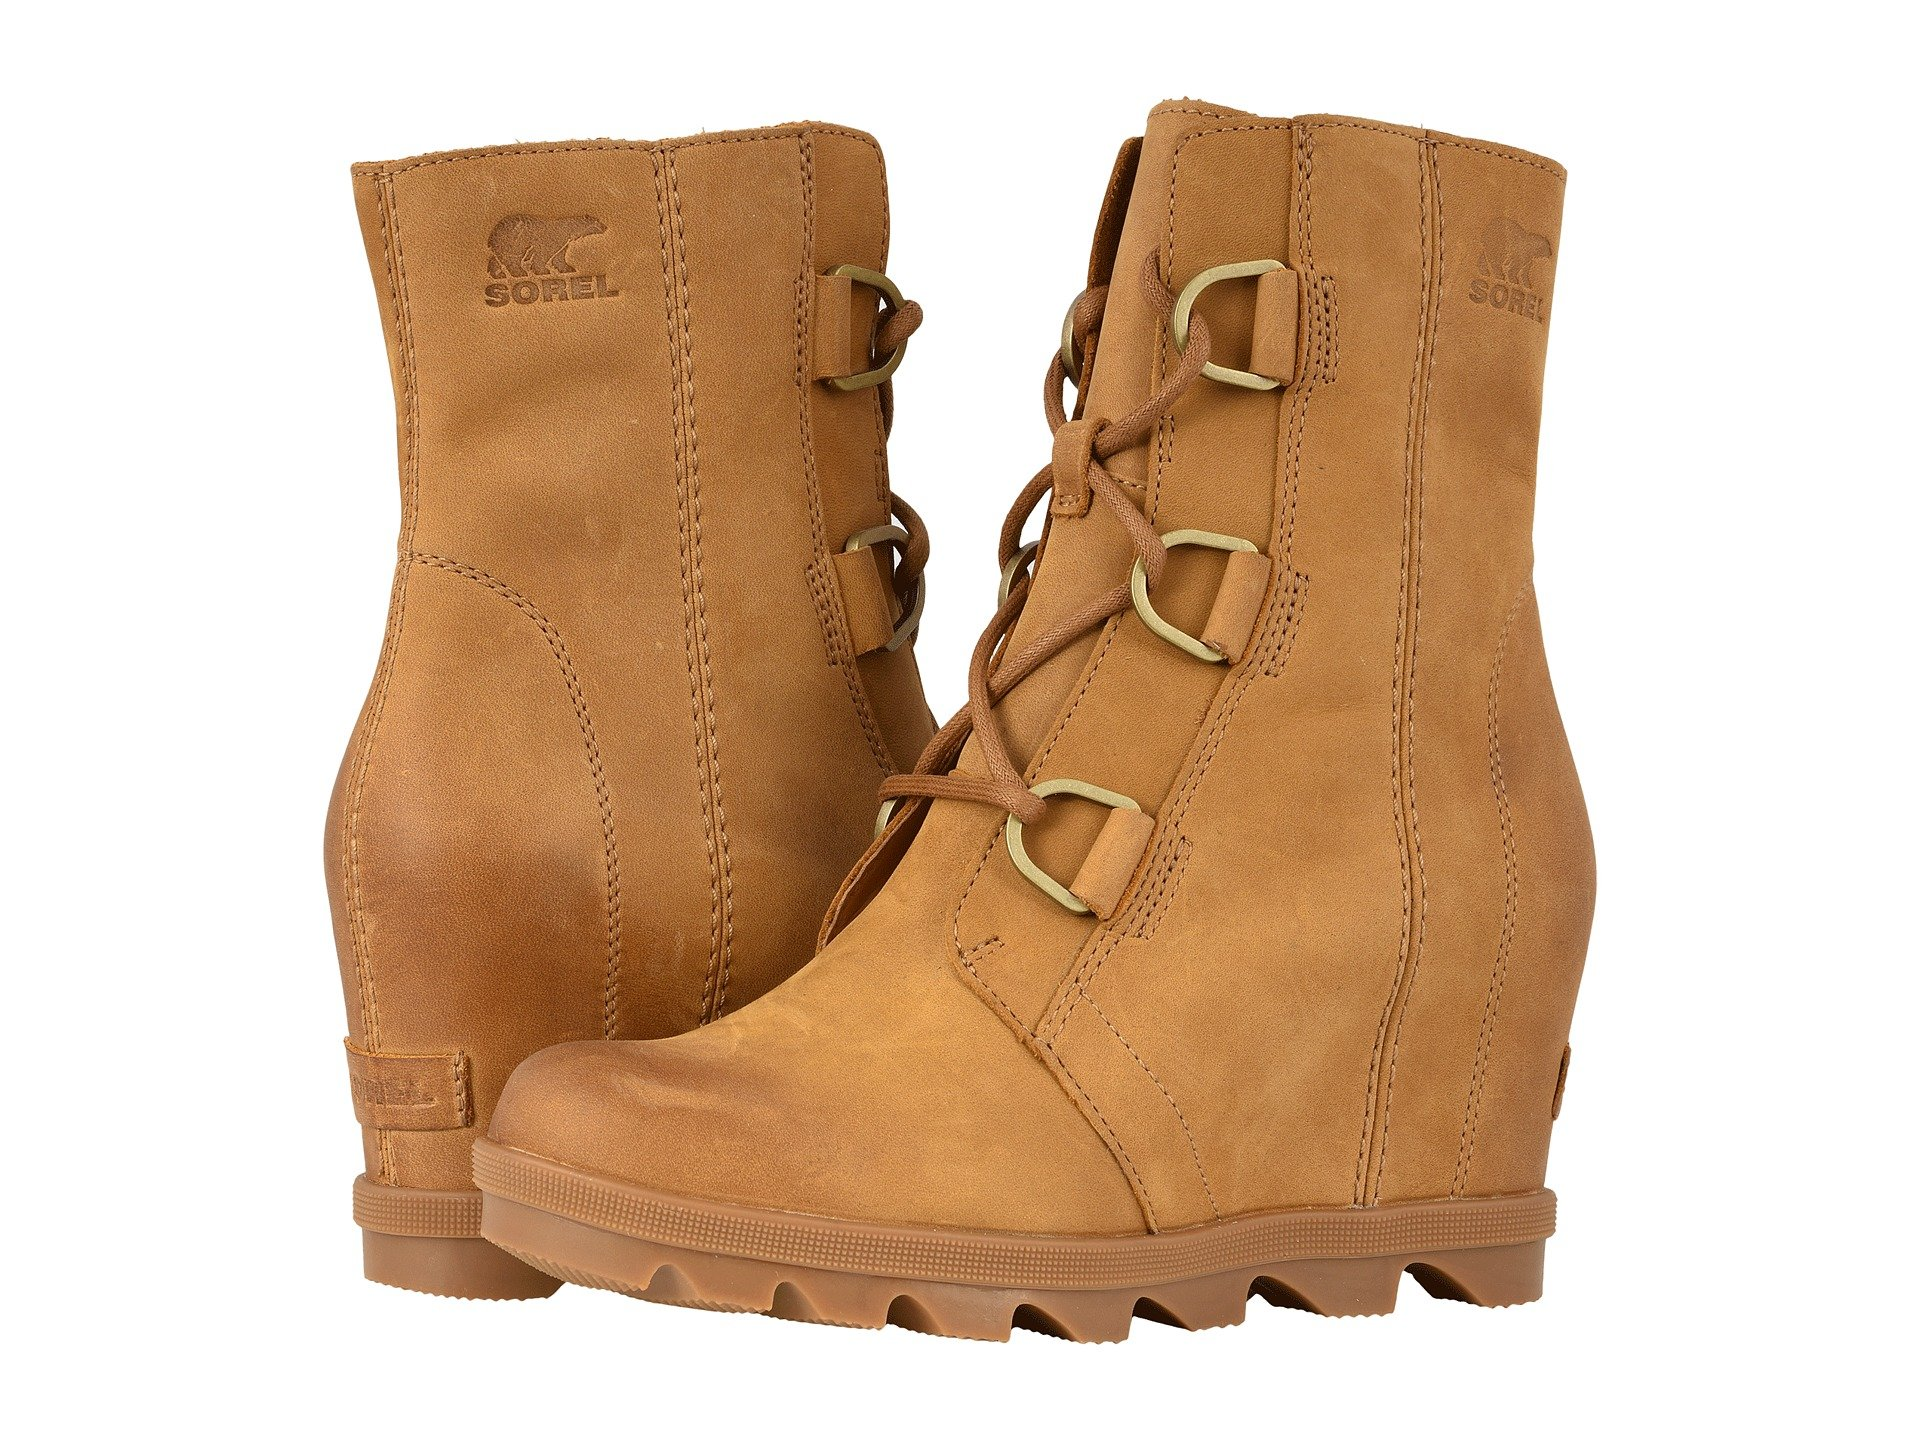 2f31d3eb50467 6PM  SOREL Wedge Boots – 53% Off + Free Shipping!